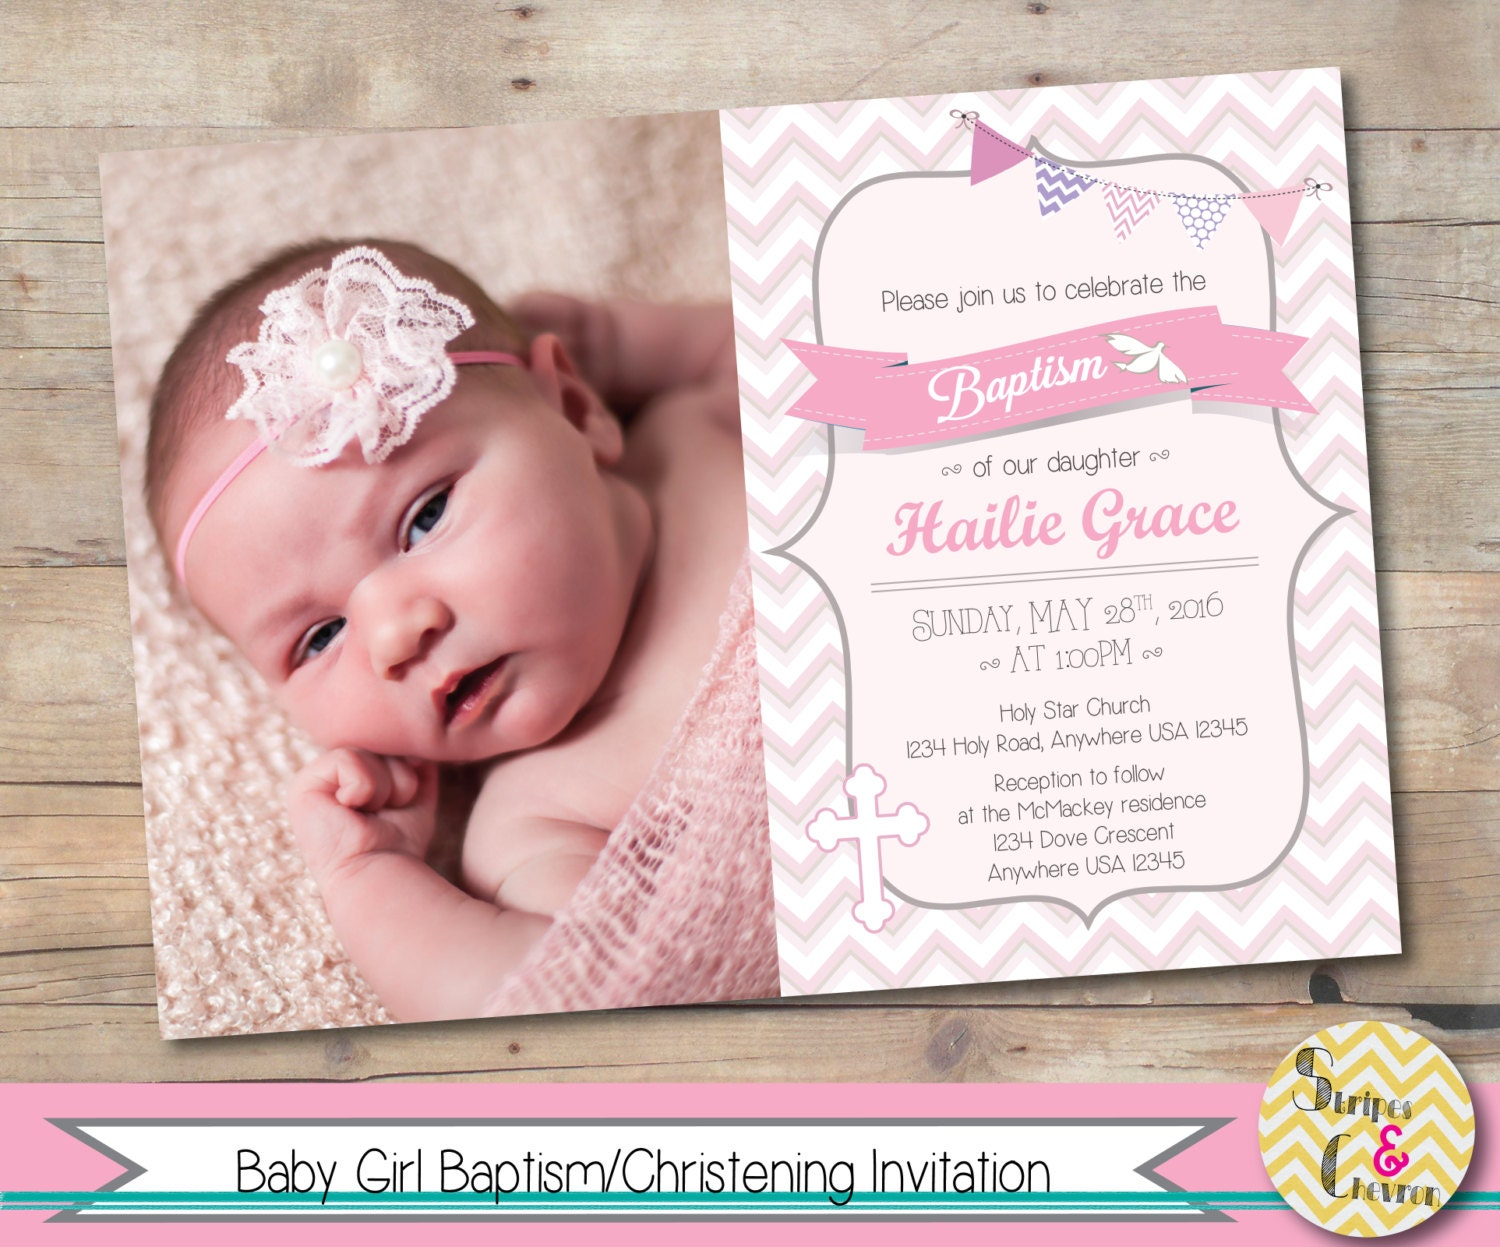 Girl baptism invitation Christening invite Personalized